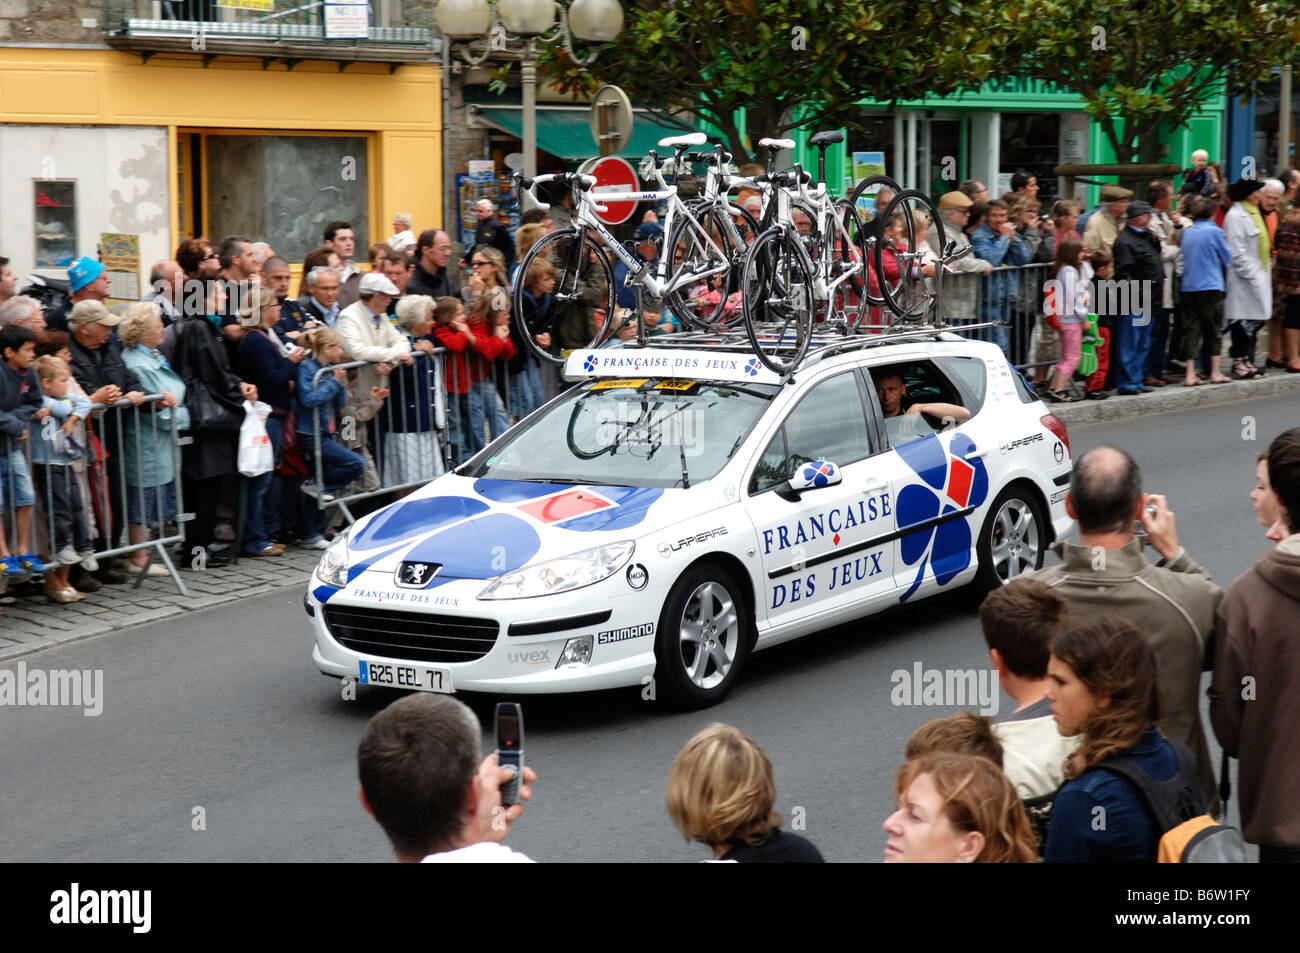 Francaise des Jeux team car on the 3rd stage of the 2008 Tour de France at Dinan in the Cotes d Amour 22 departement - Stock Image